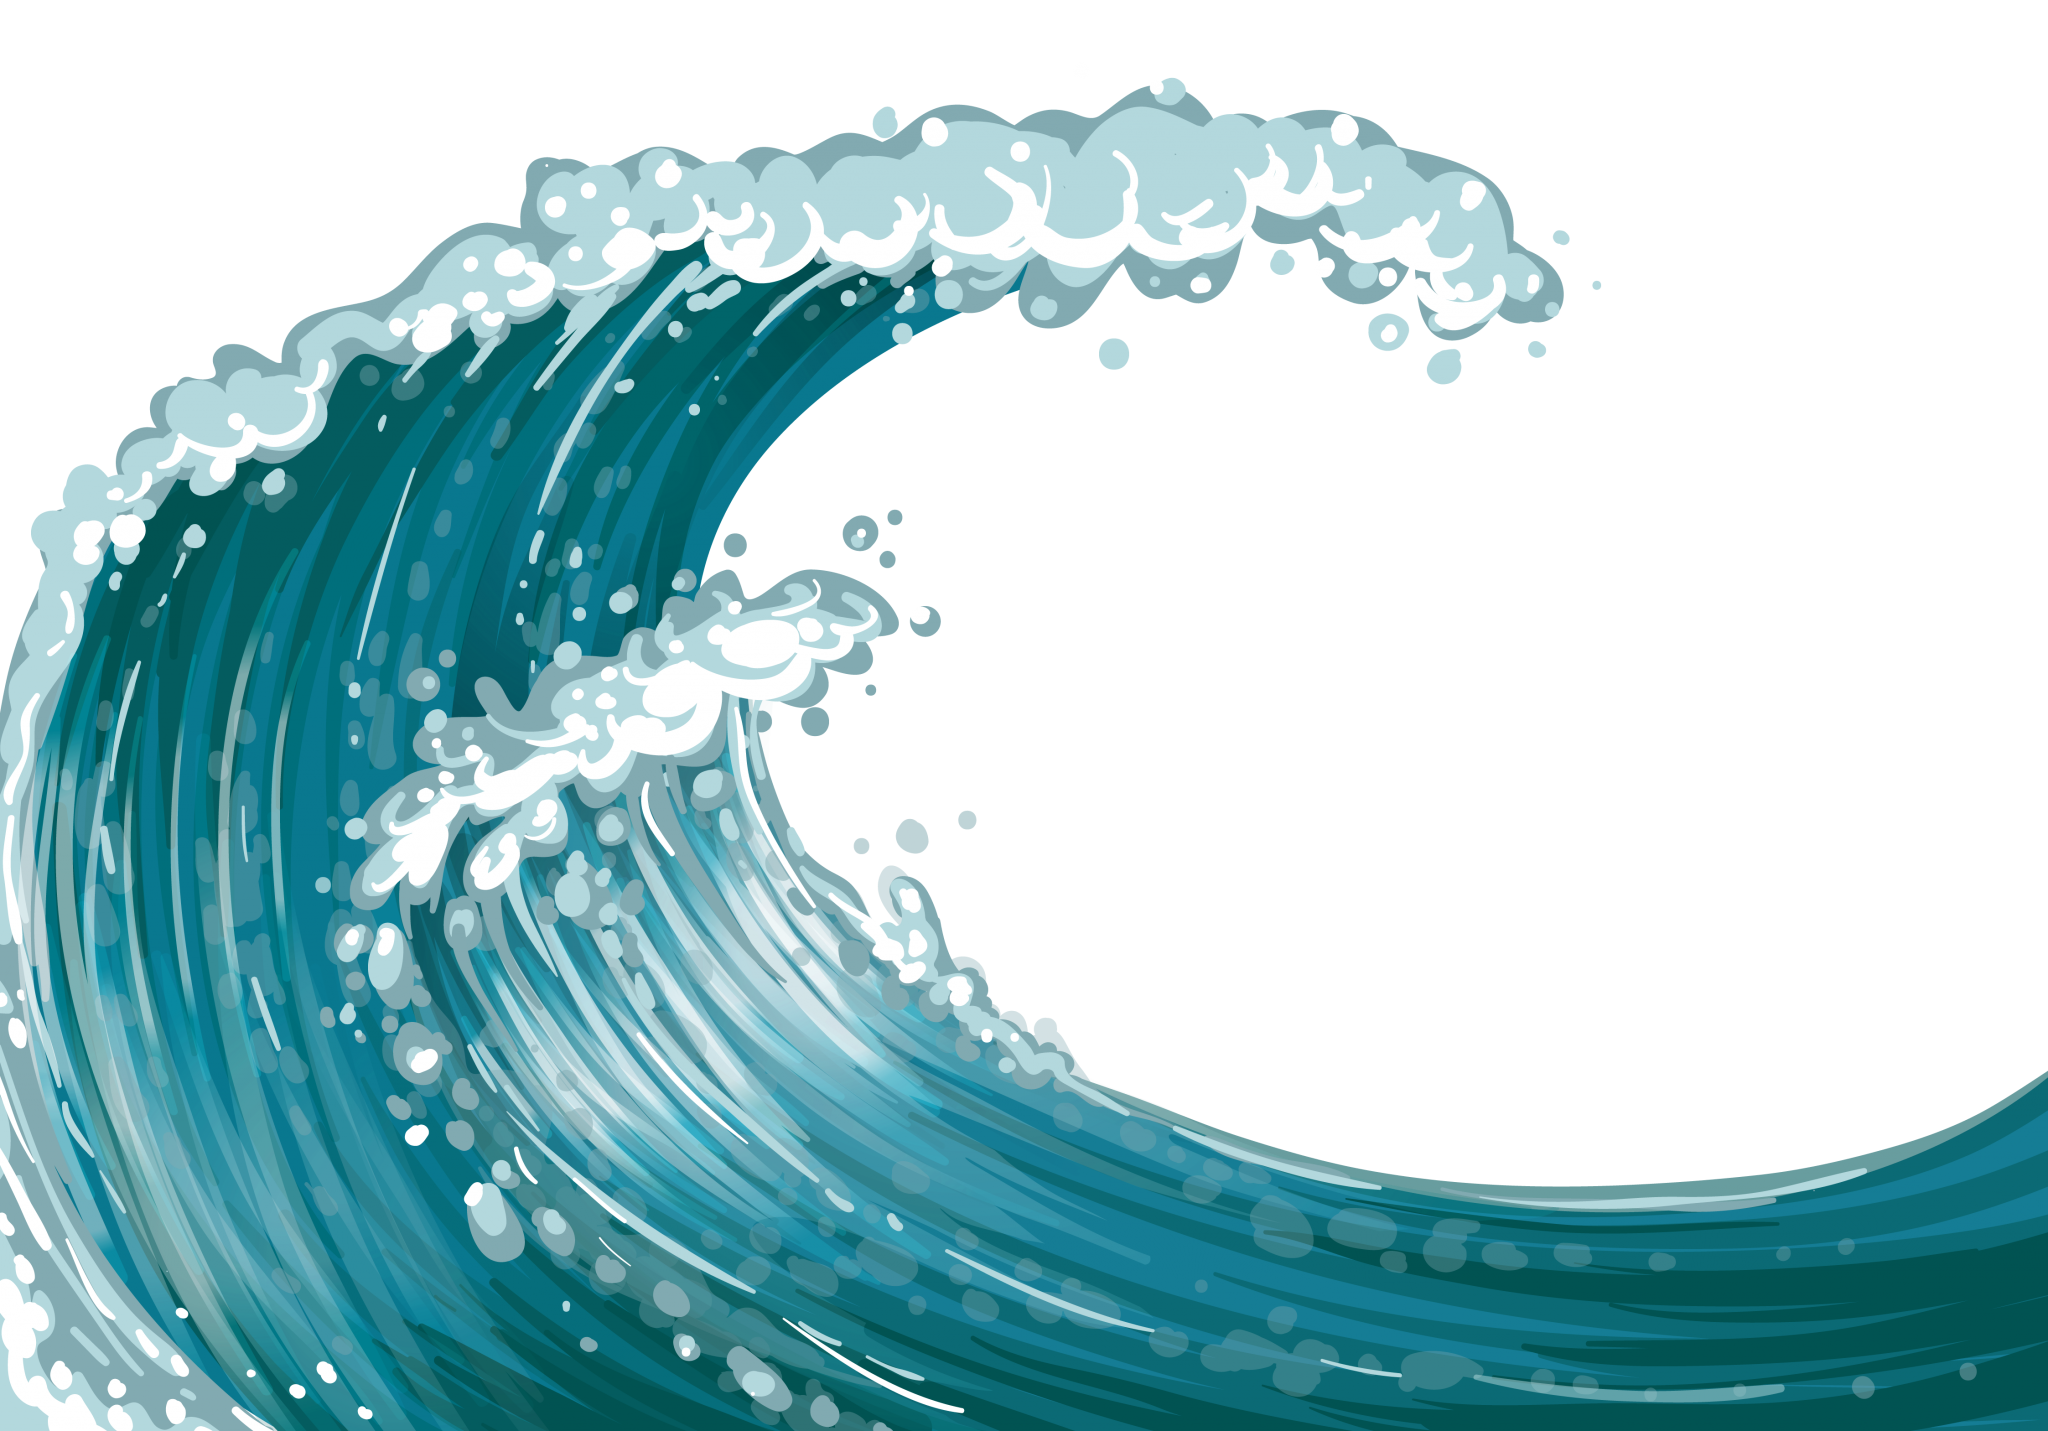 fish in the waves clipart #12